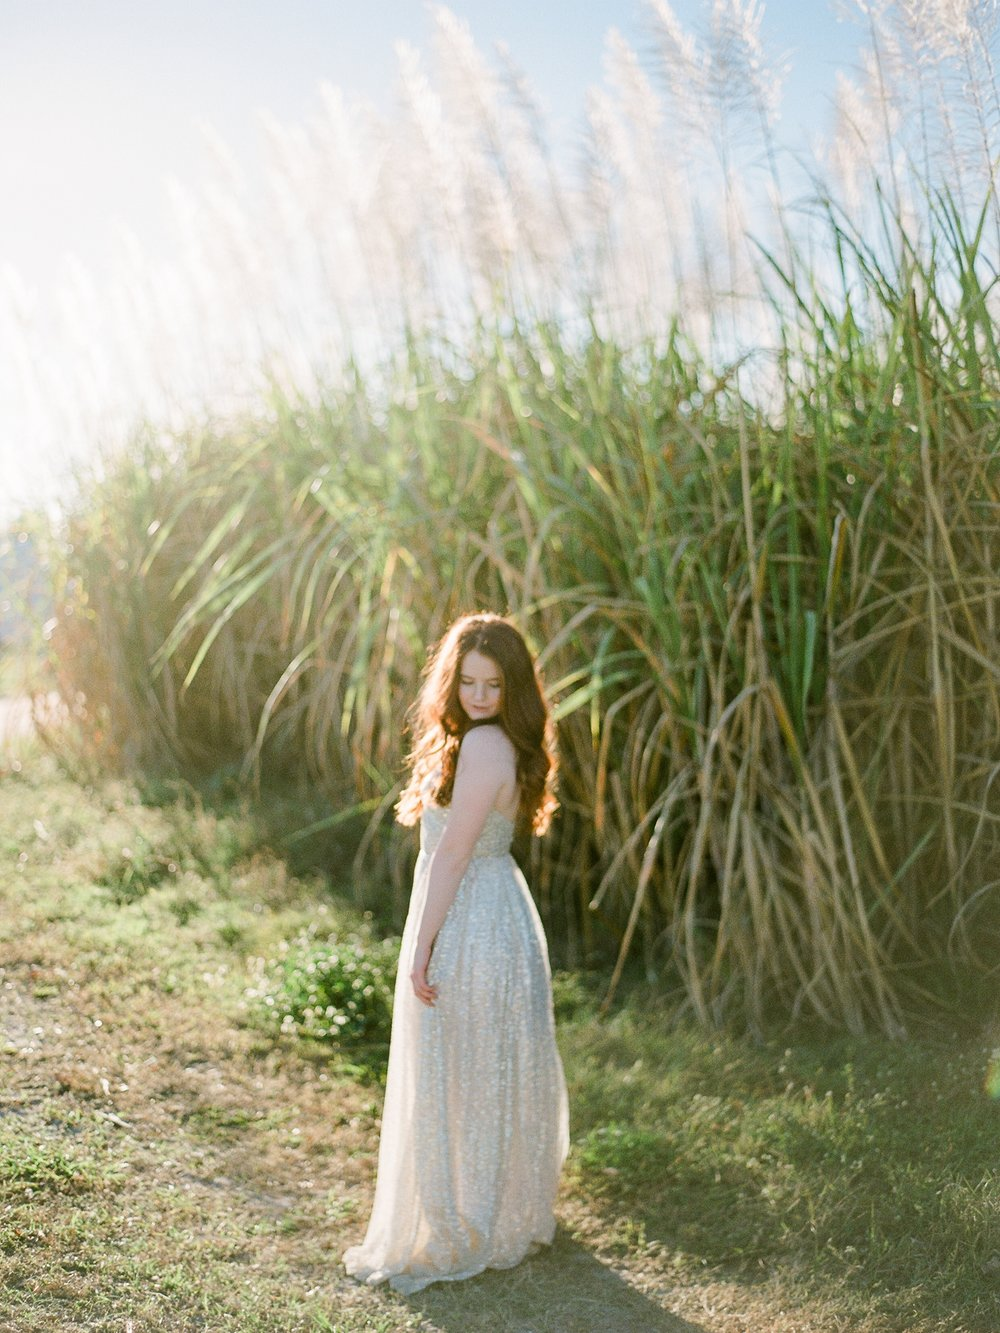 Sugarcane Inspired Shoot 2 4.jpg